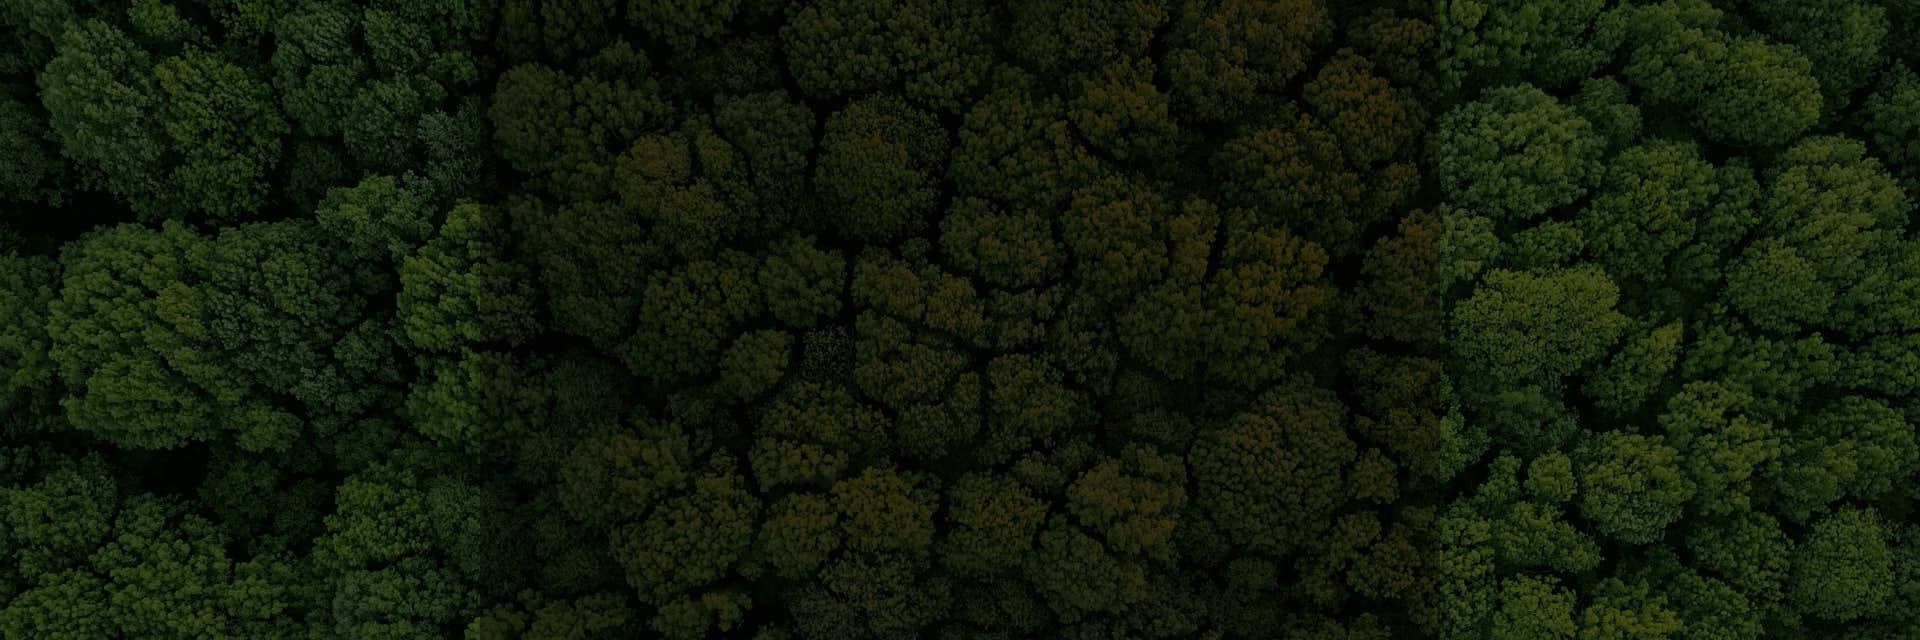 A forrest of green trees from above